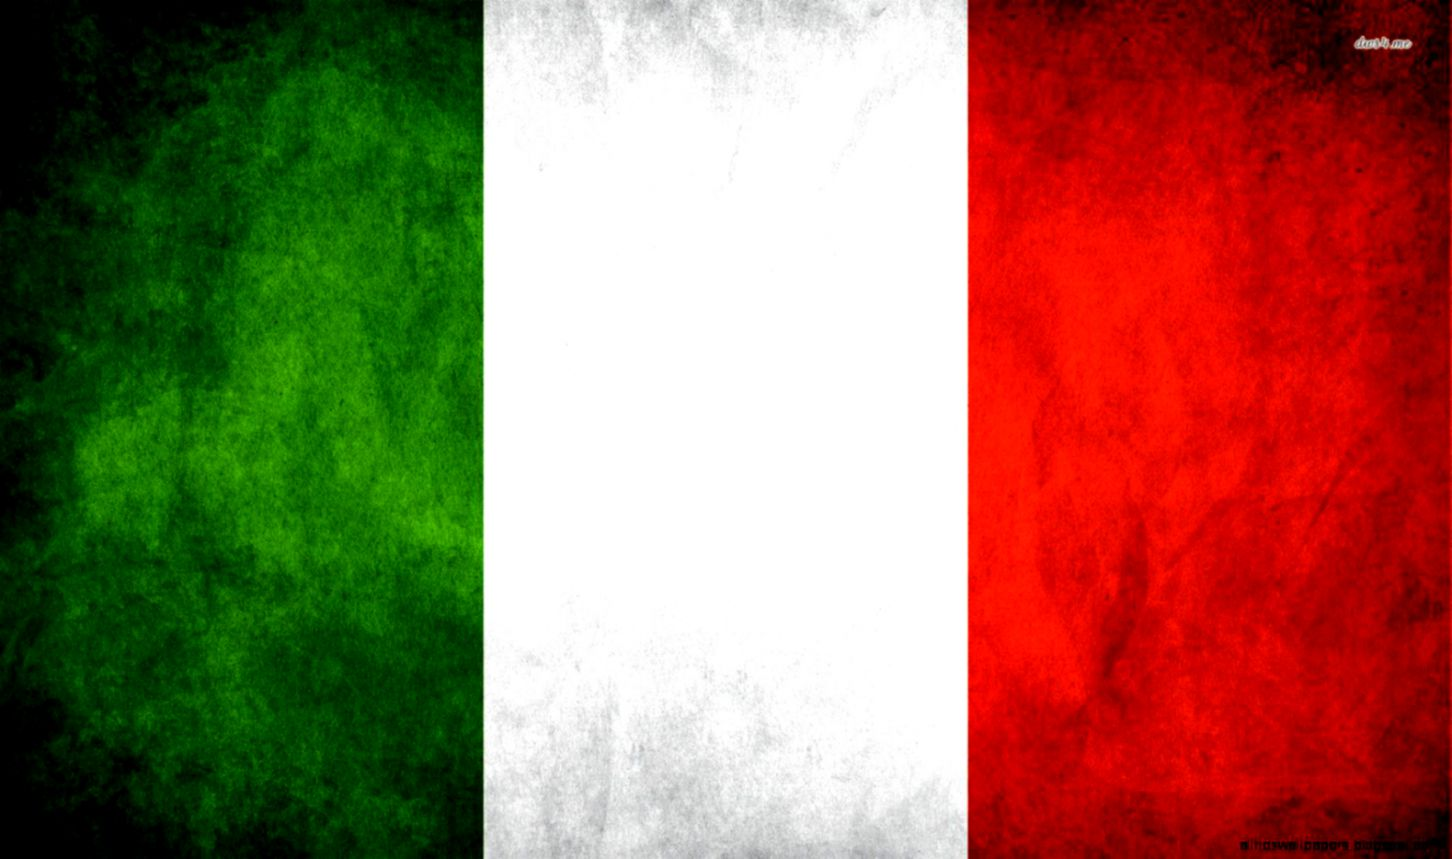 italian-abstract-flag-wallpaper-hd-all-hd-wallpapers.jpg